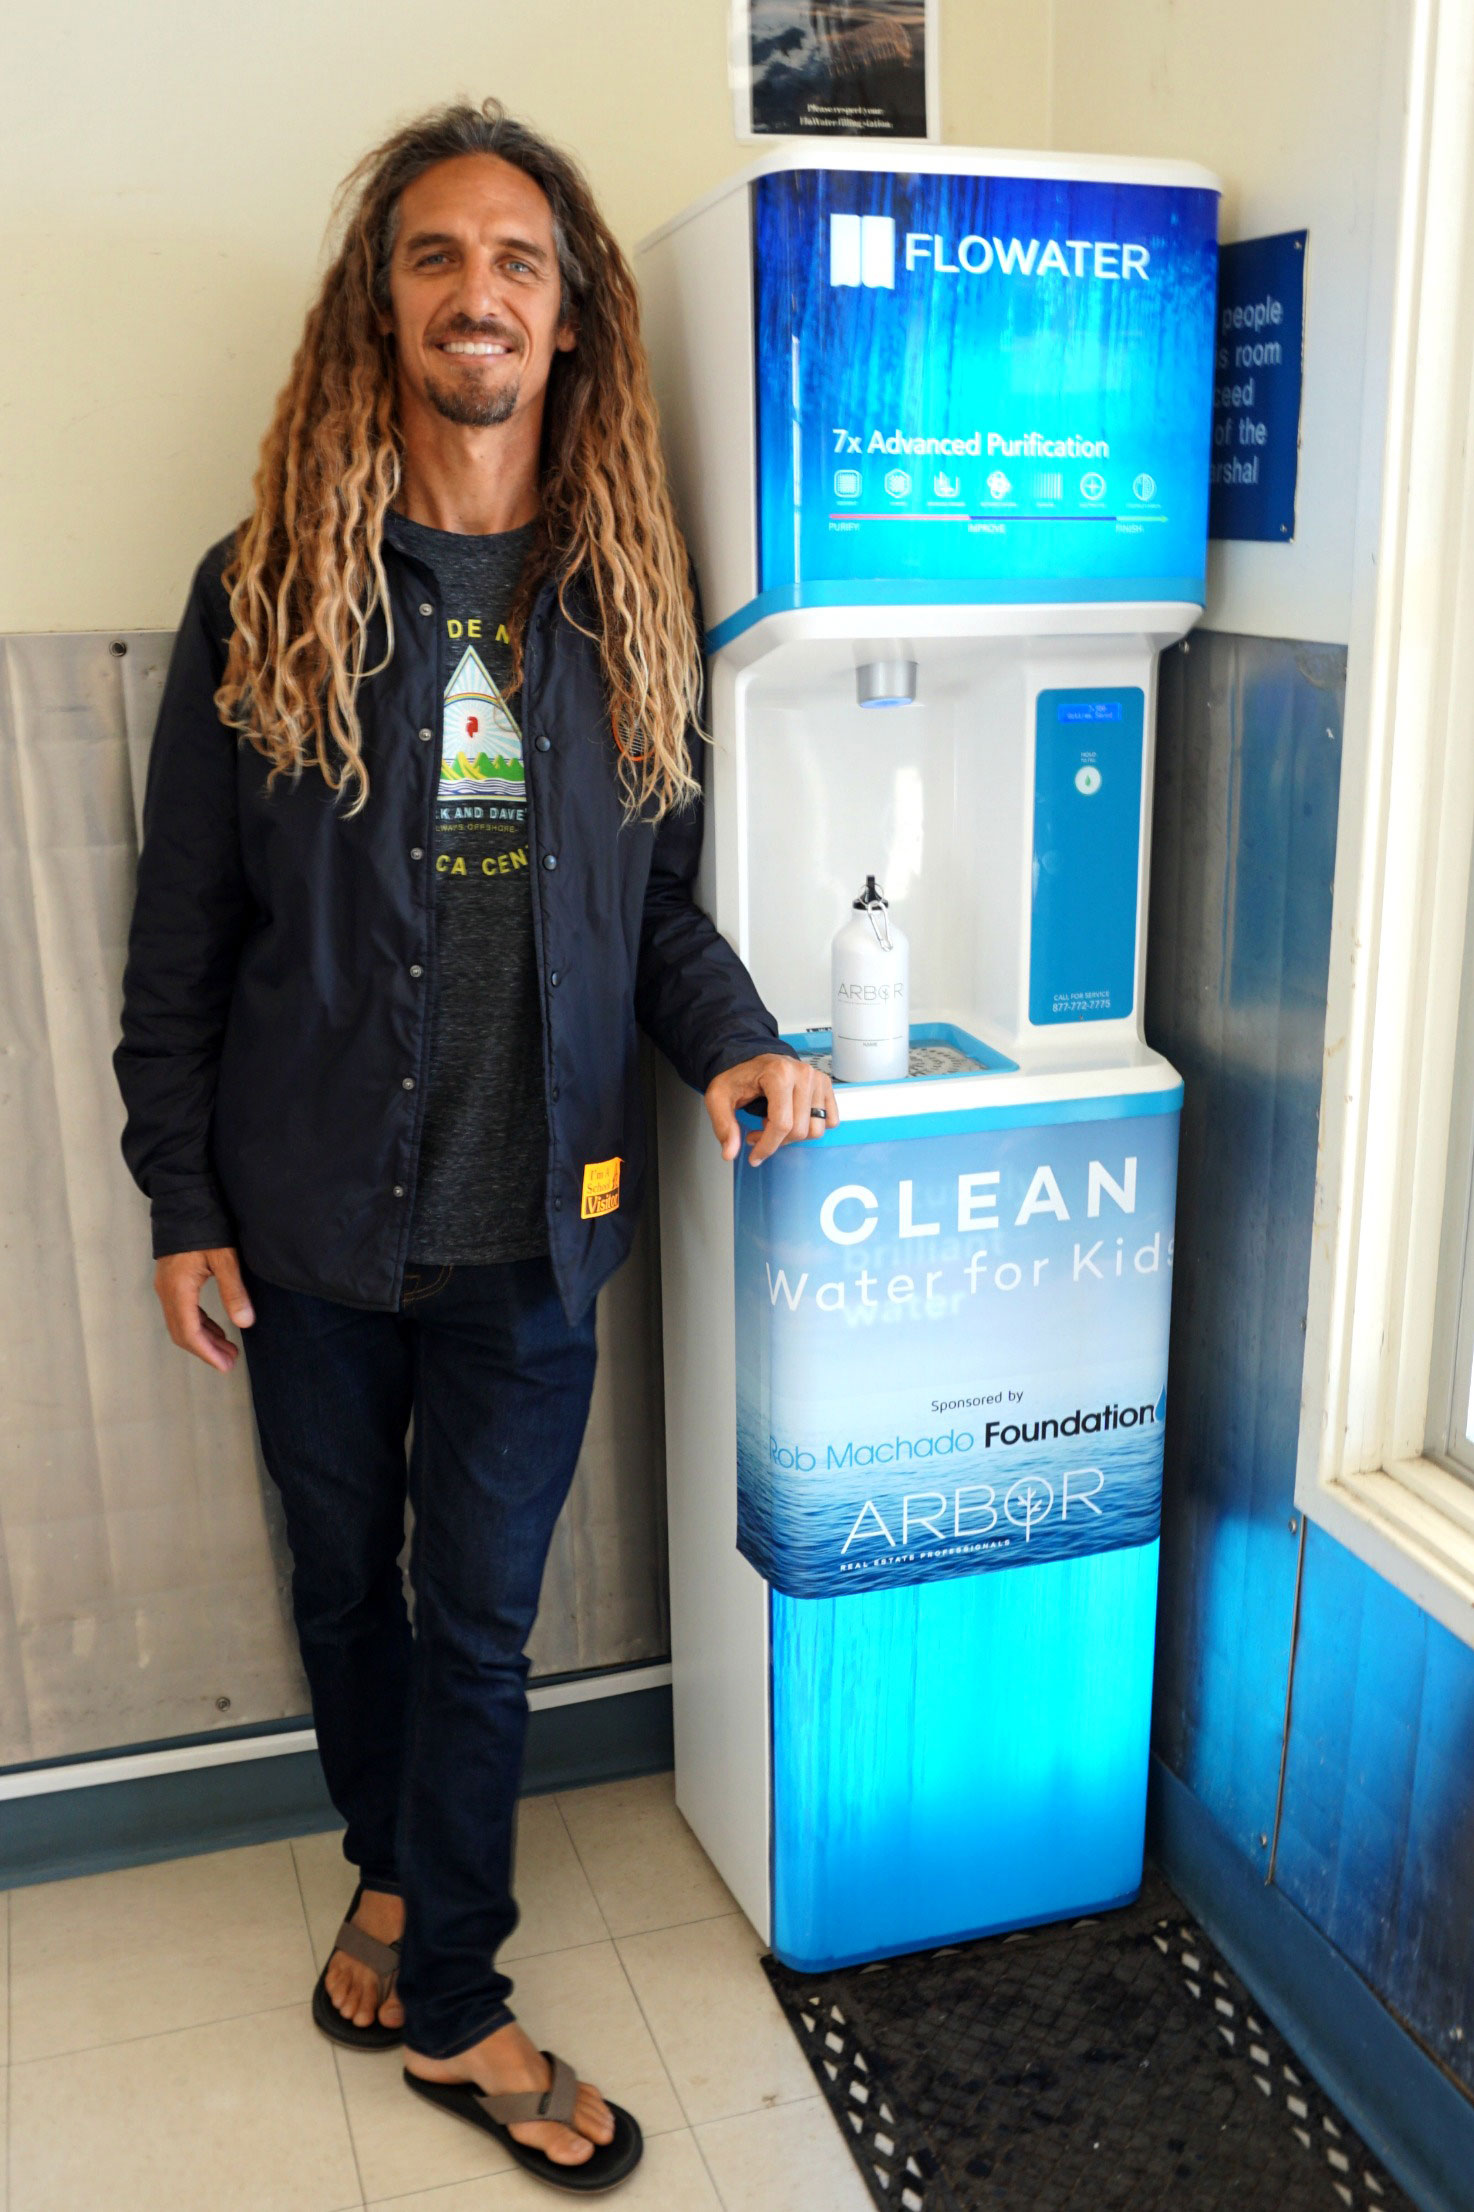 Arbor Real Estate Rob Machado with FloWater